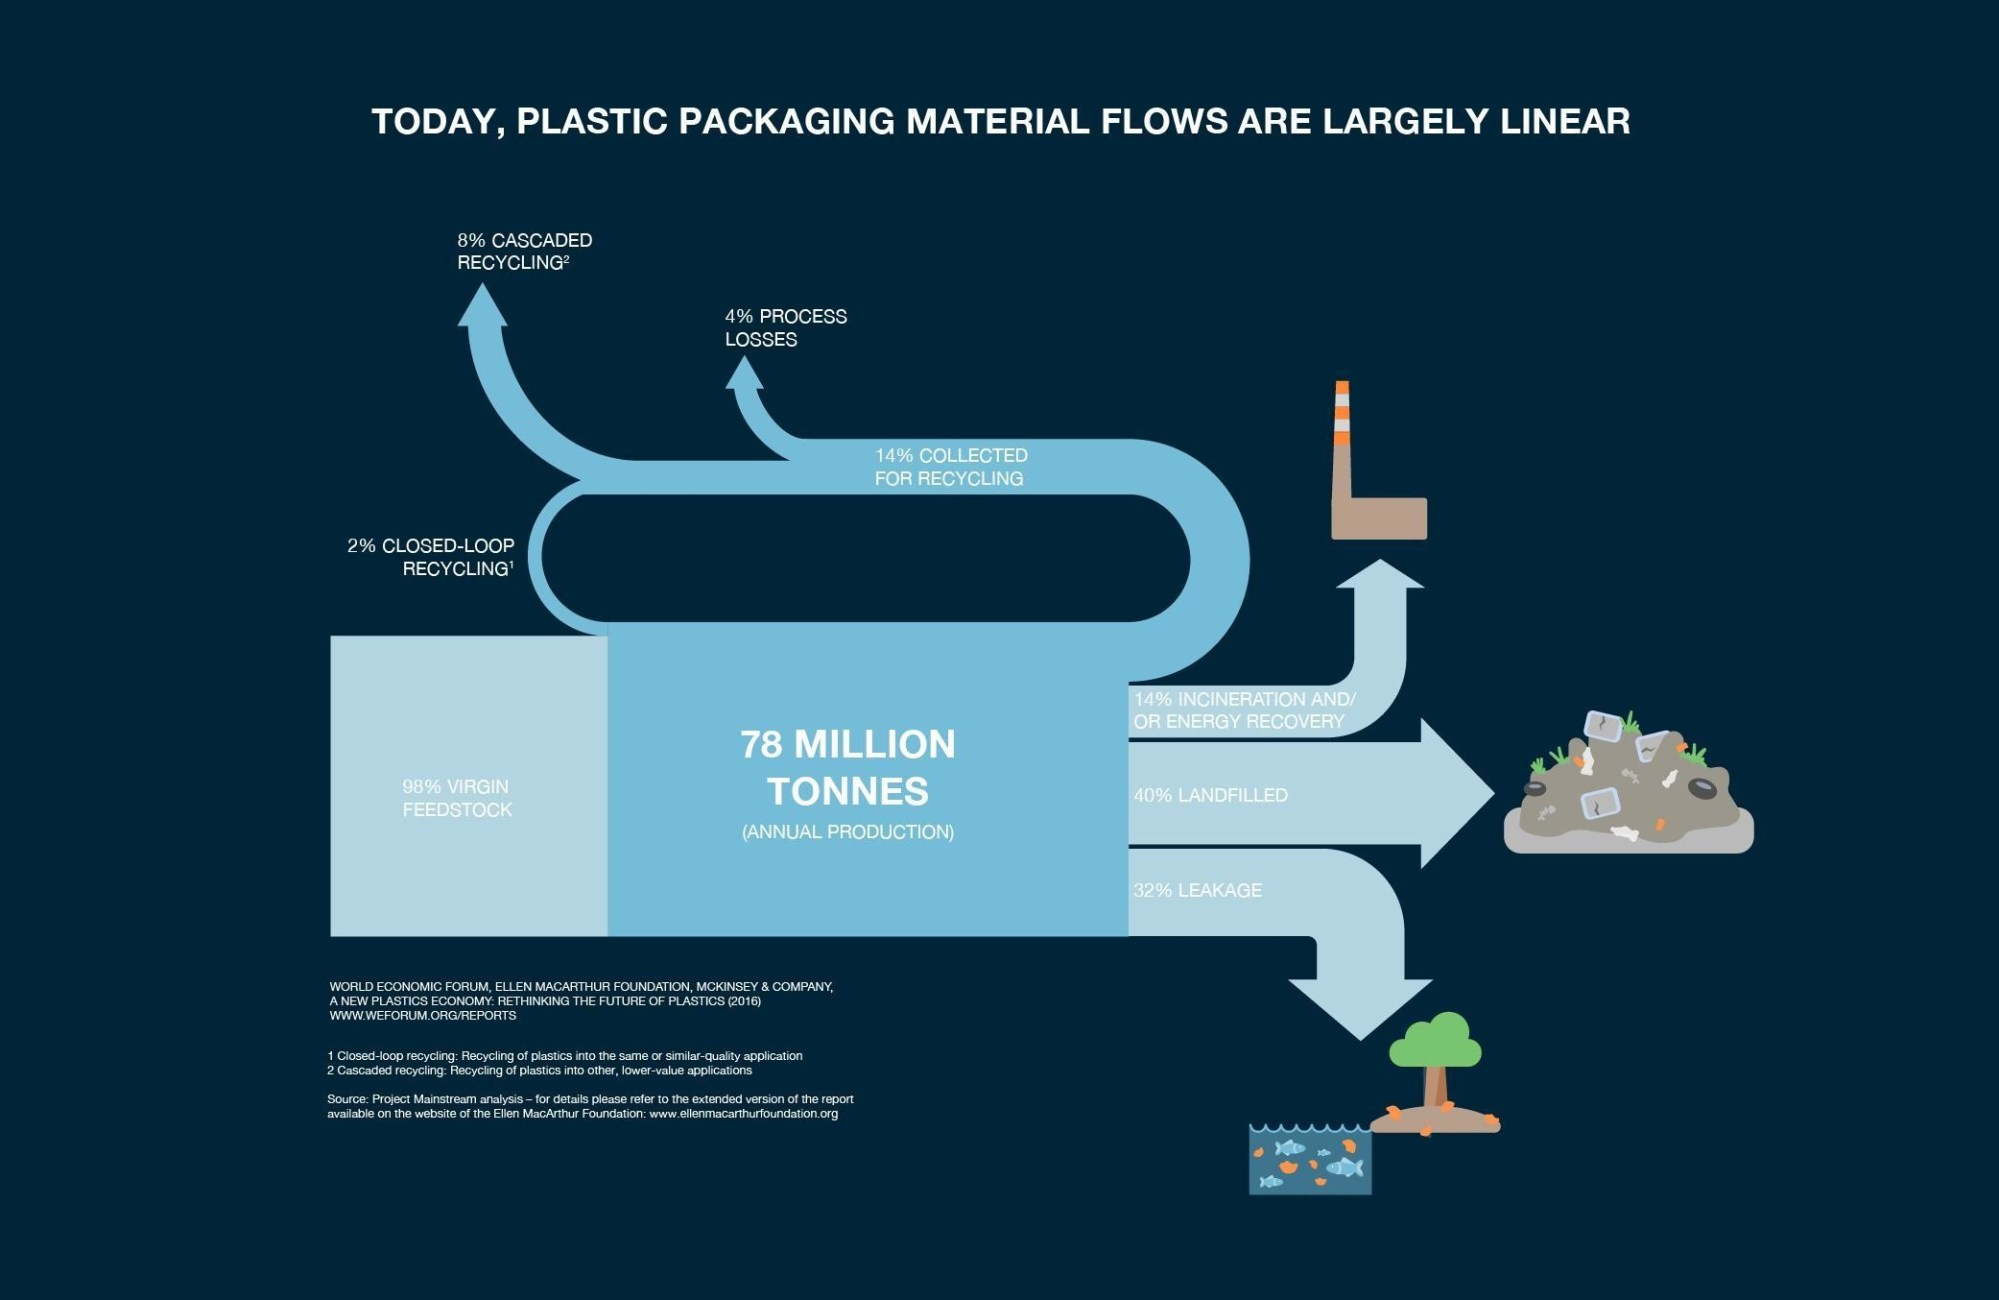 hight resolution of every minute one garbage truck of plastic is dumped into our oceans this has to stop world economic forum